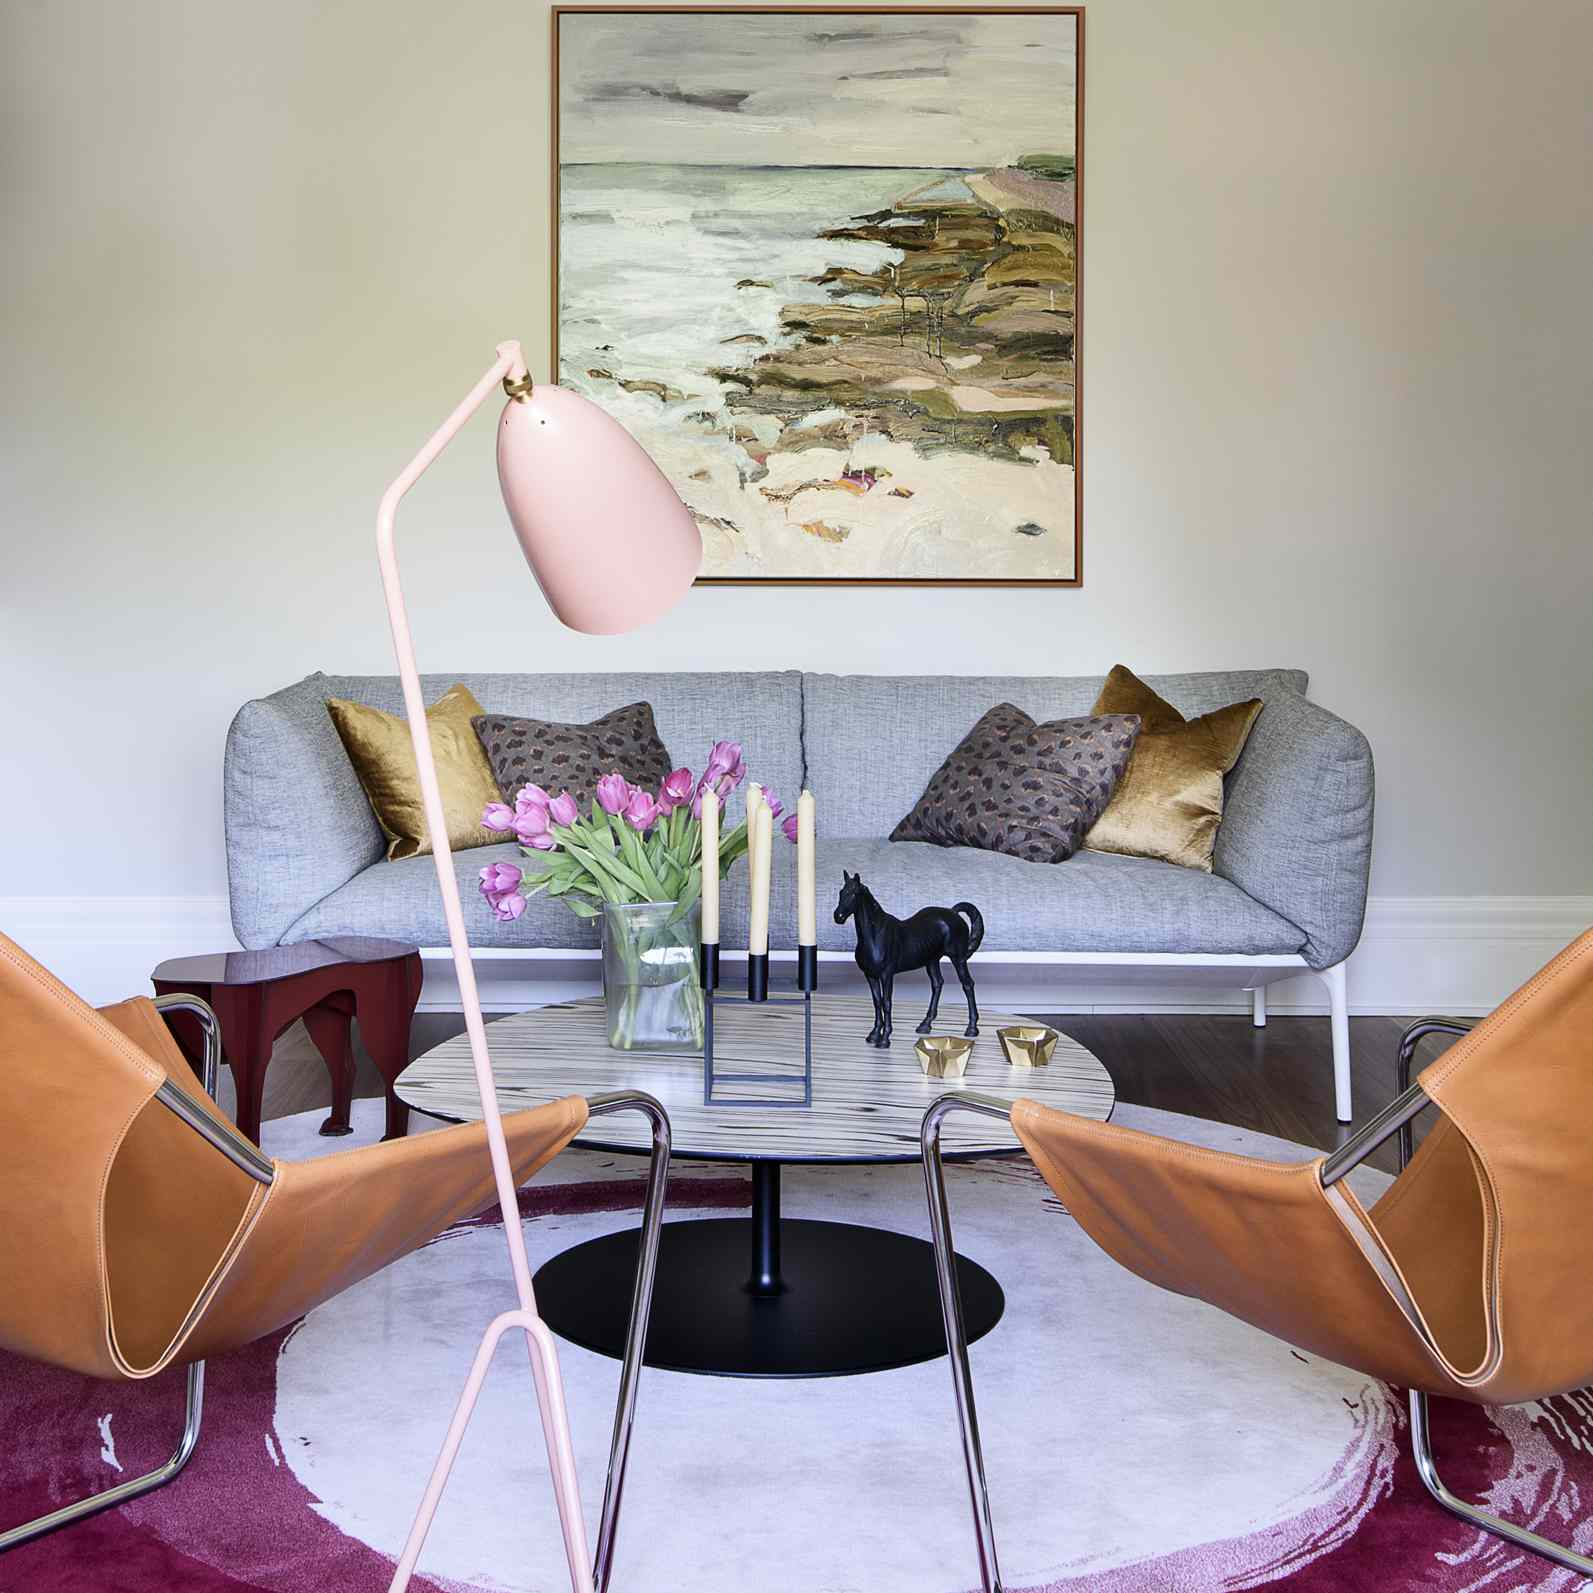 A mid-century style living area with a thoughtful mixture of high and low decorative items, artwork, and furniture.